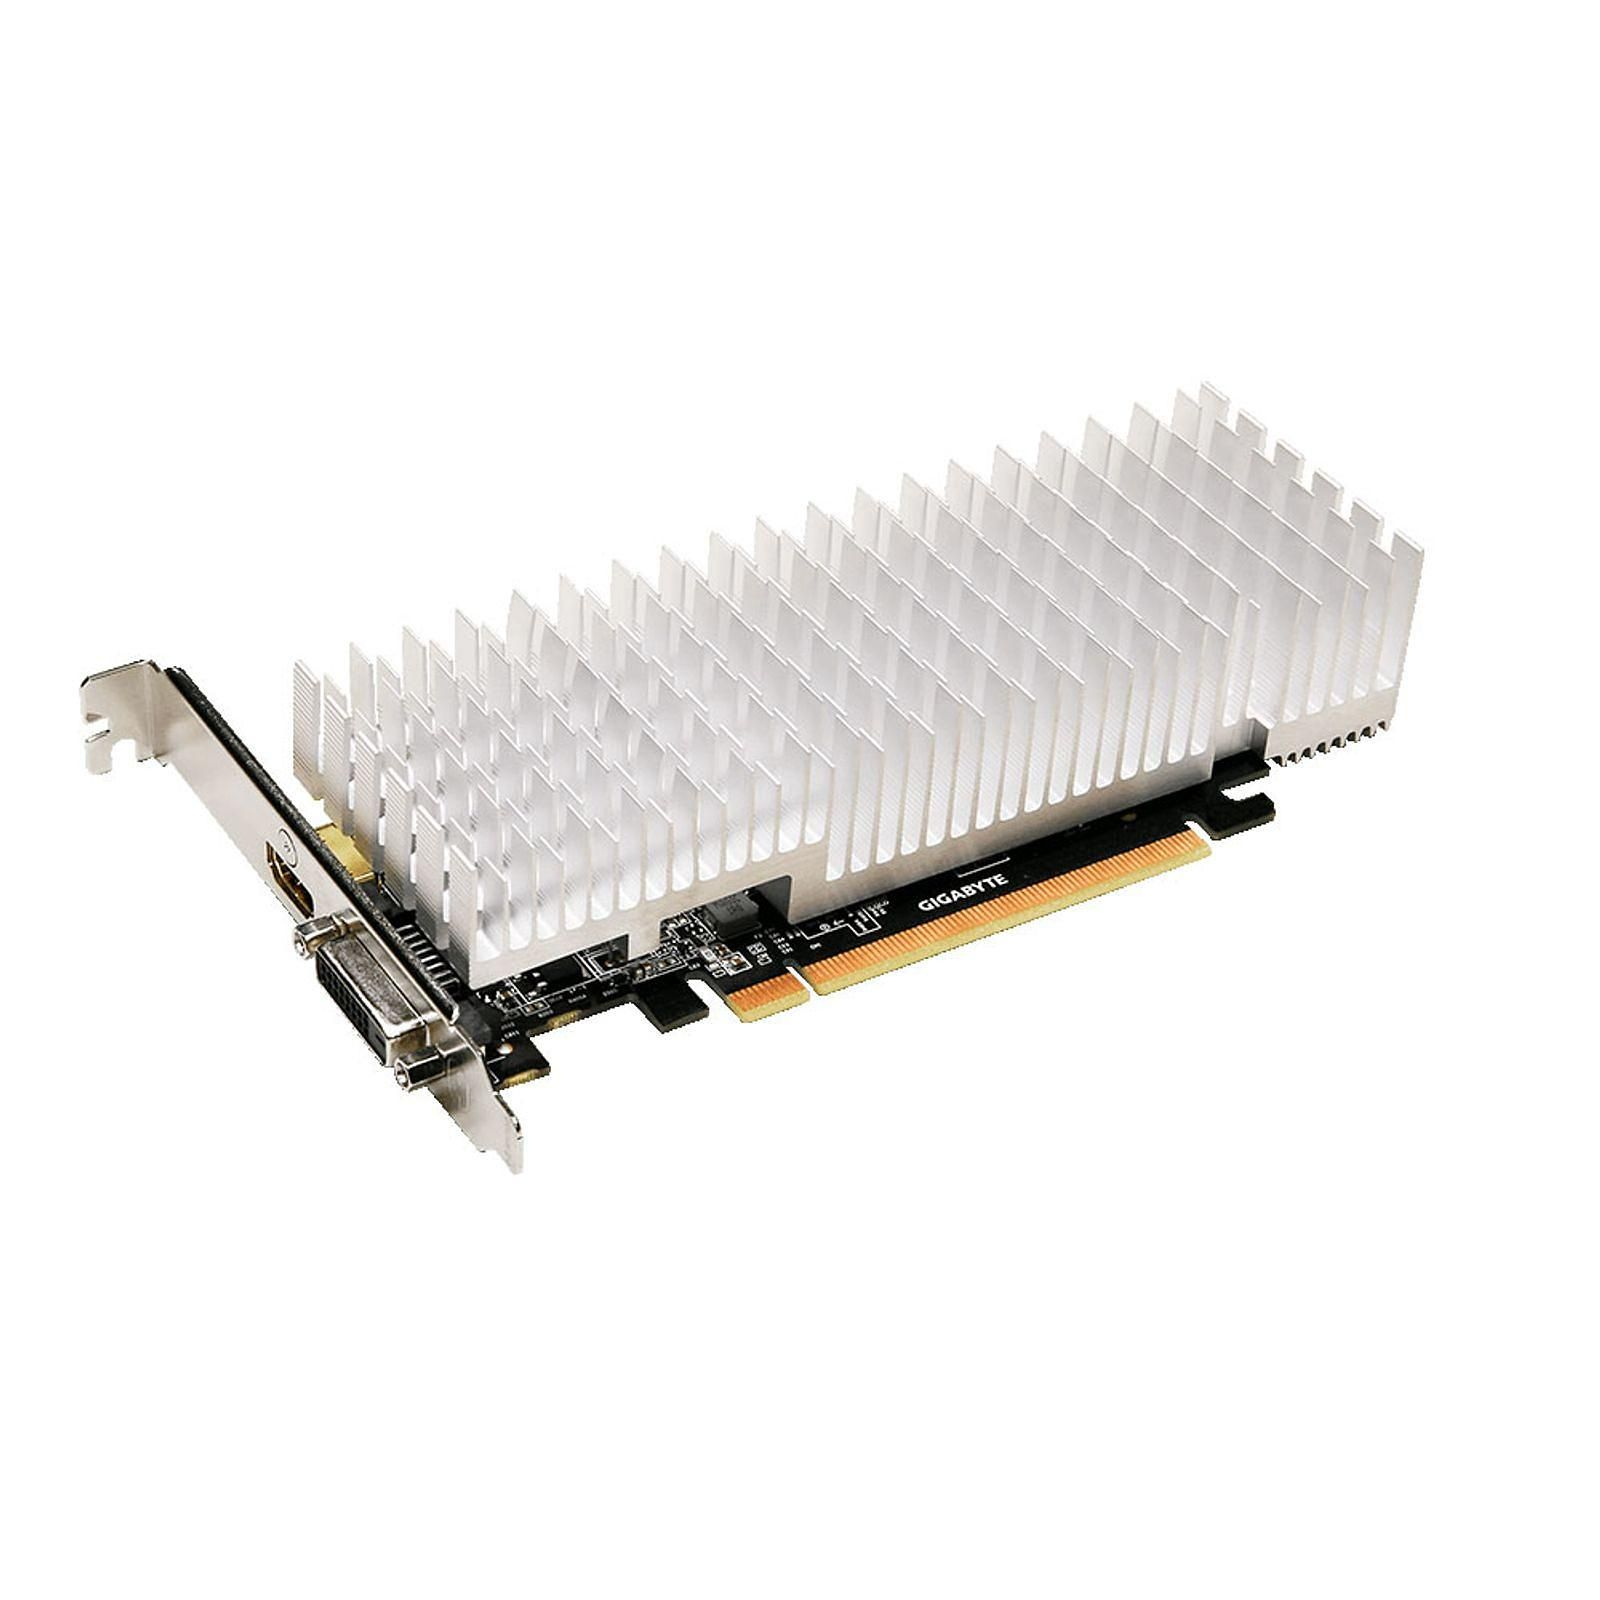 Carte graphique Gigabyte GeForce  1030 GT 2 Go DDR5 PCIe 3.0, informatique reunion, informatique ile de la Réunion 974